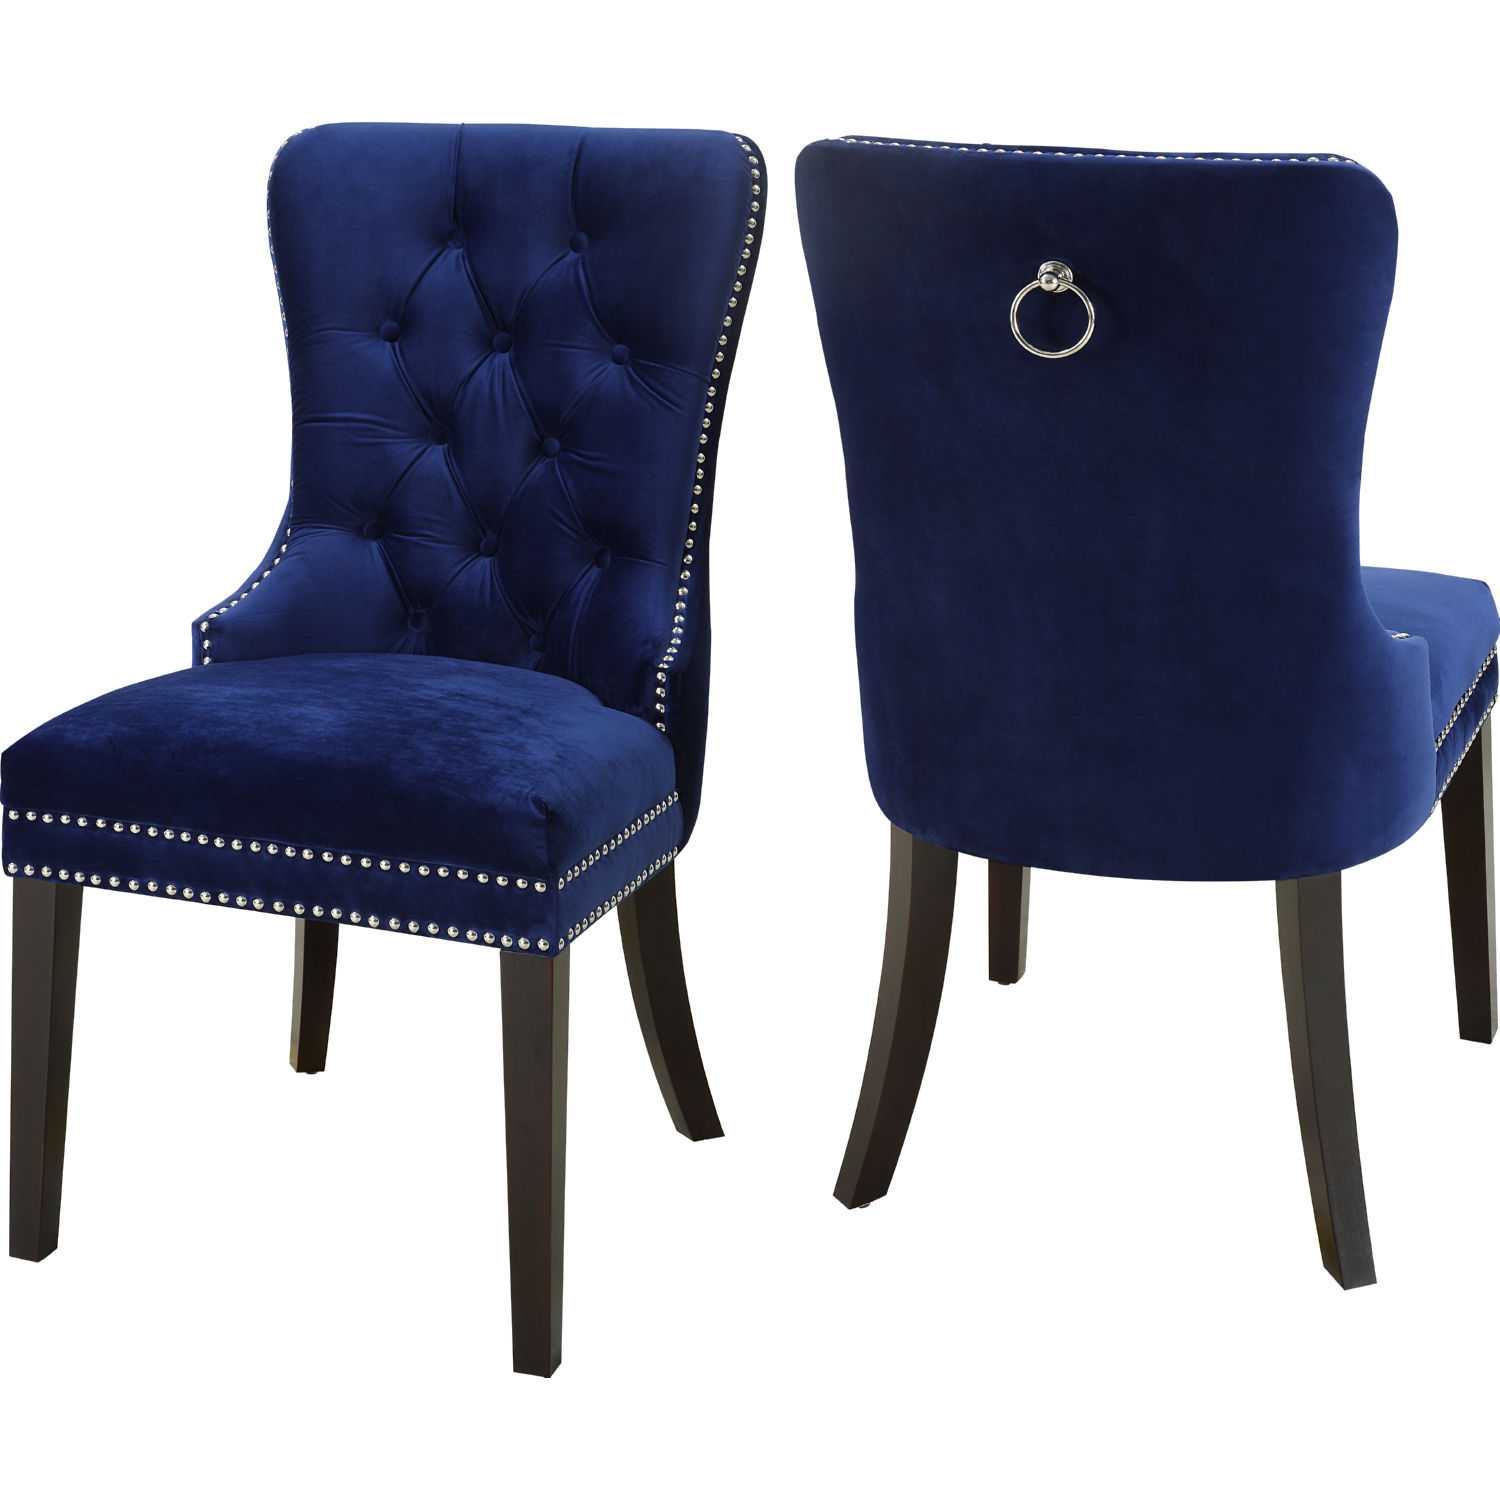 Meridian 740navy C Nikki Dining Chair In Tufted Navy Blue